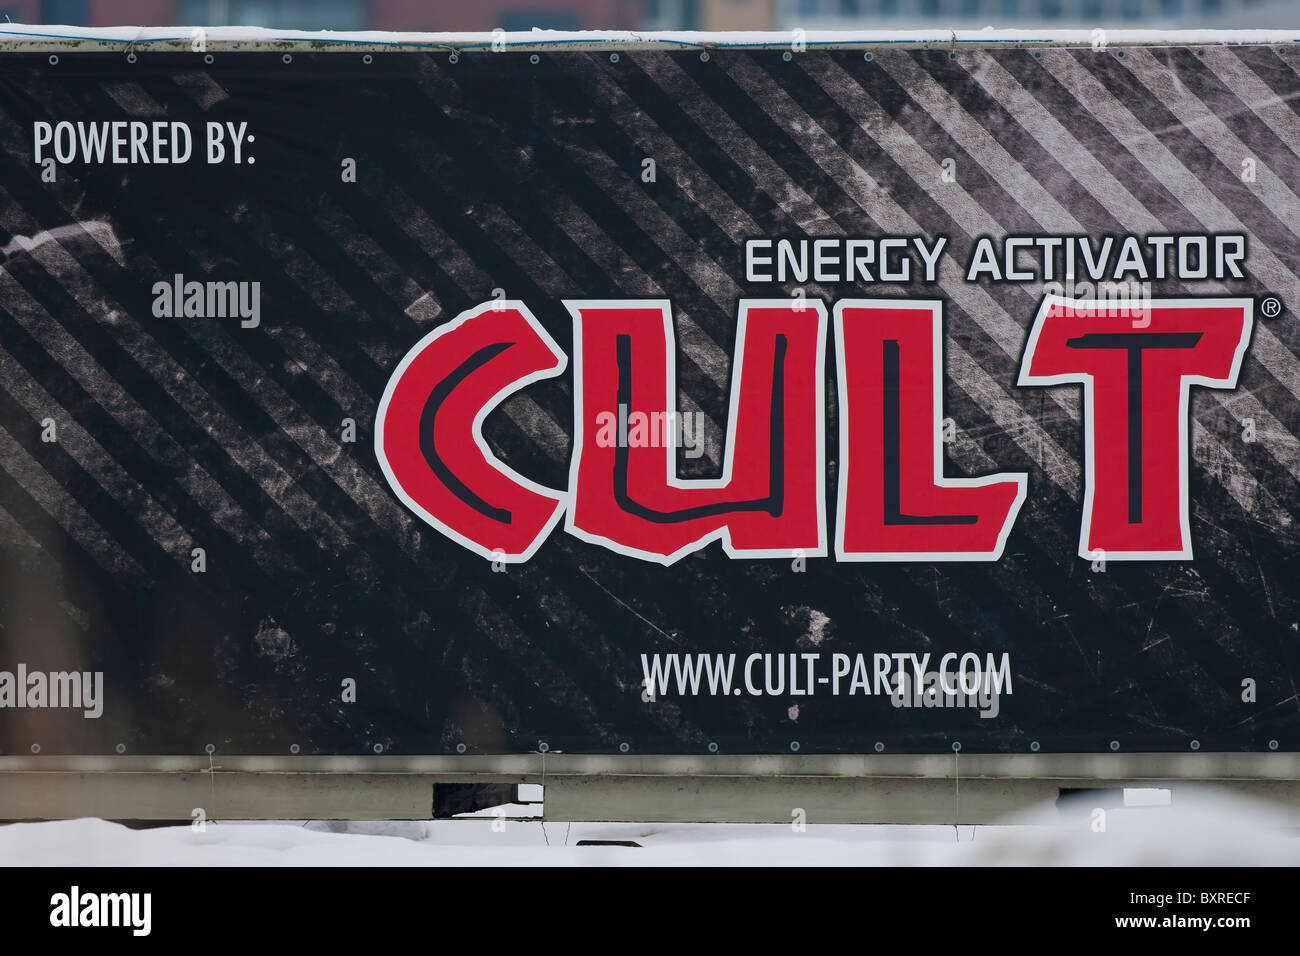 Giant billboard advertise for energy activator - Stock Image